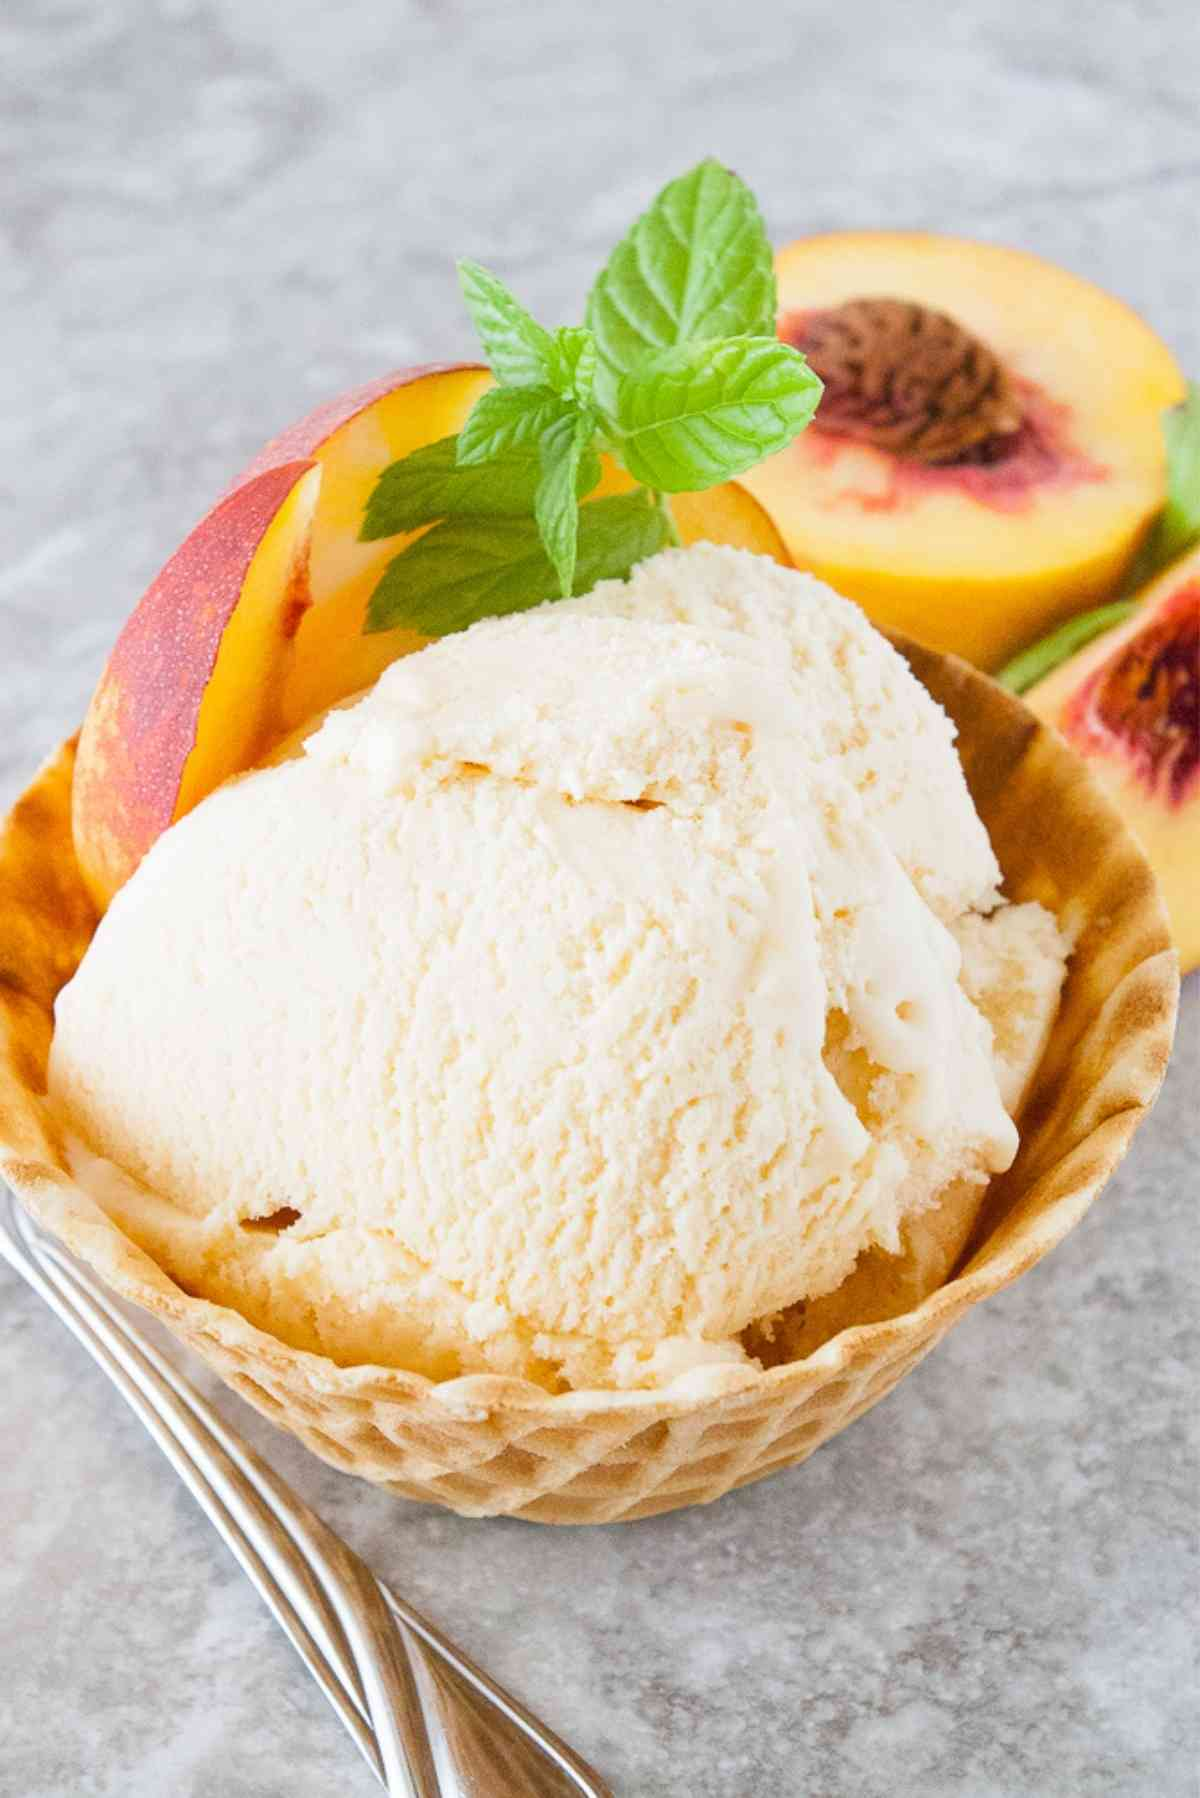 Waffle bowl of homemade peach ice cream garnished with fresh peaches and mint.